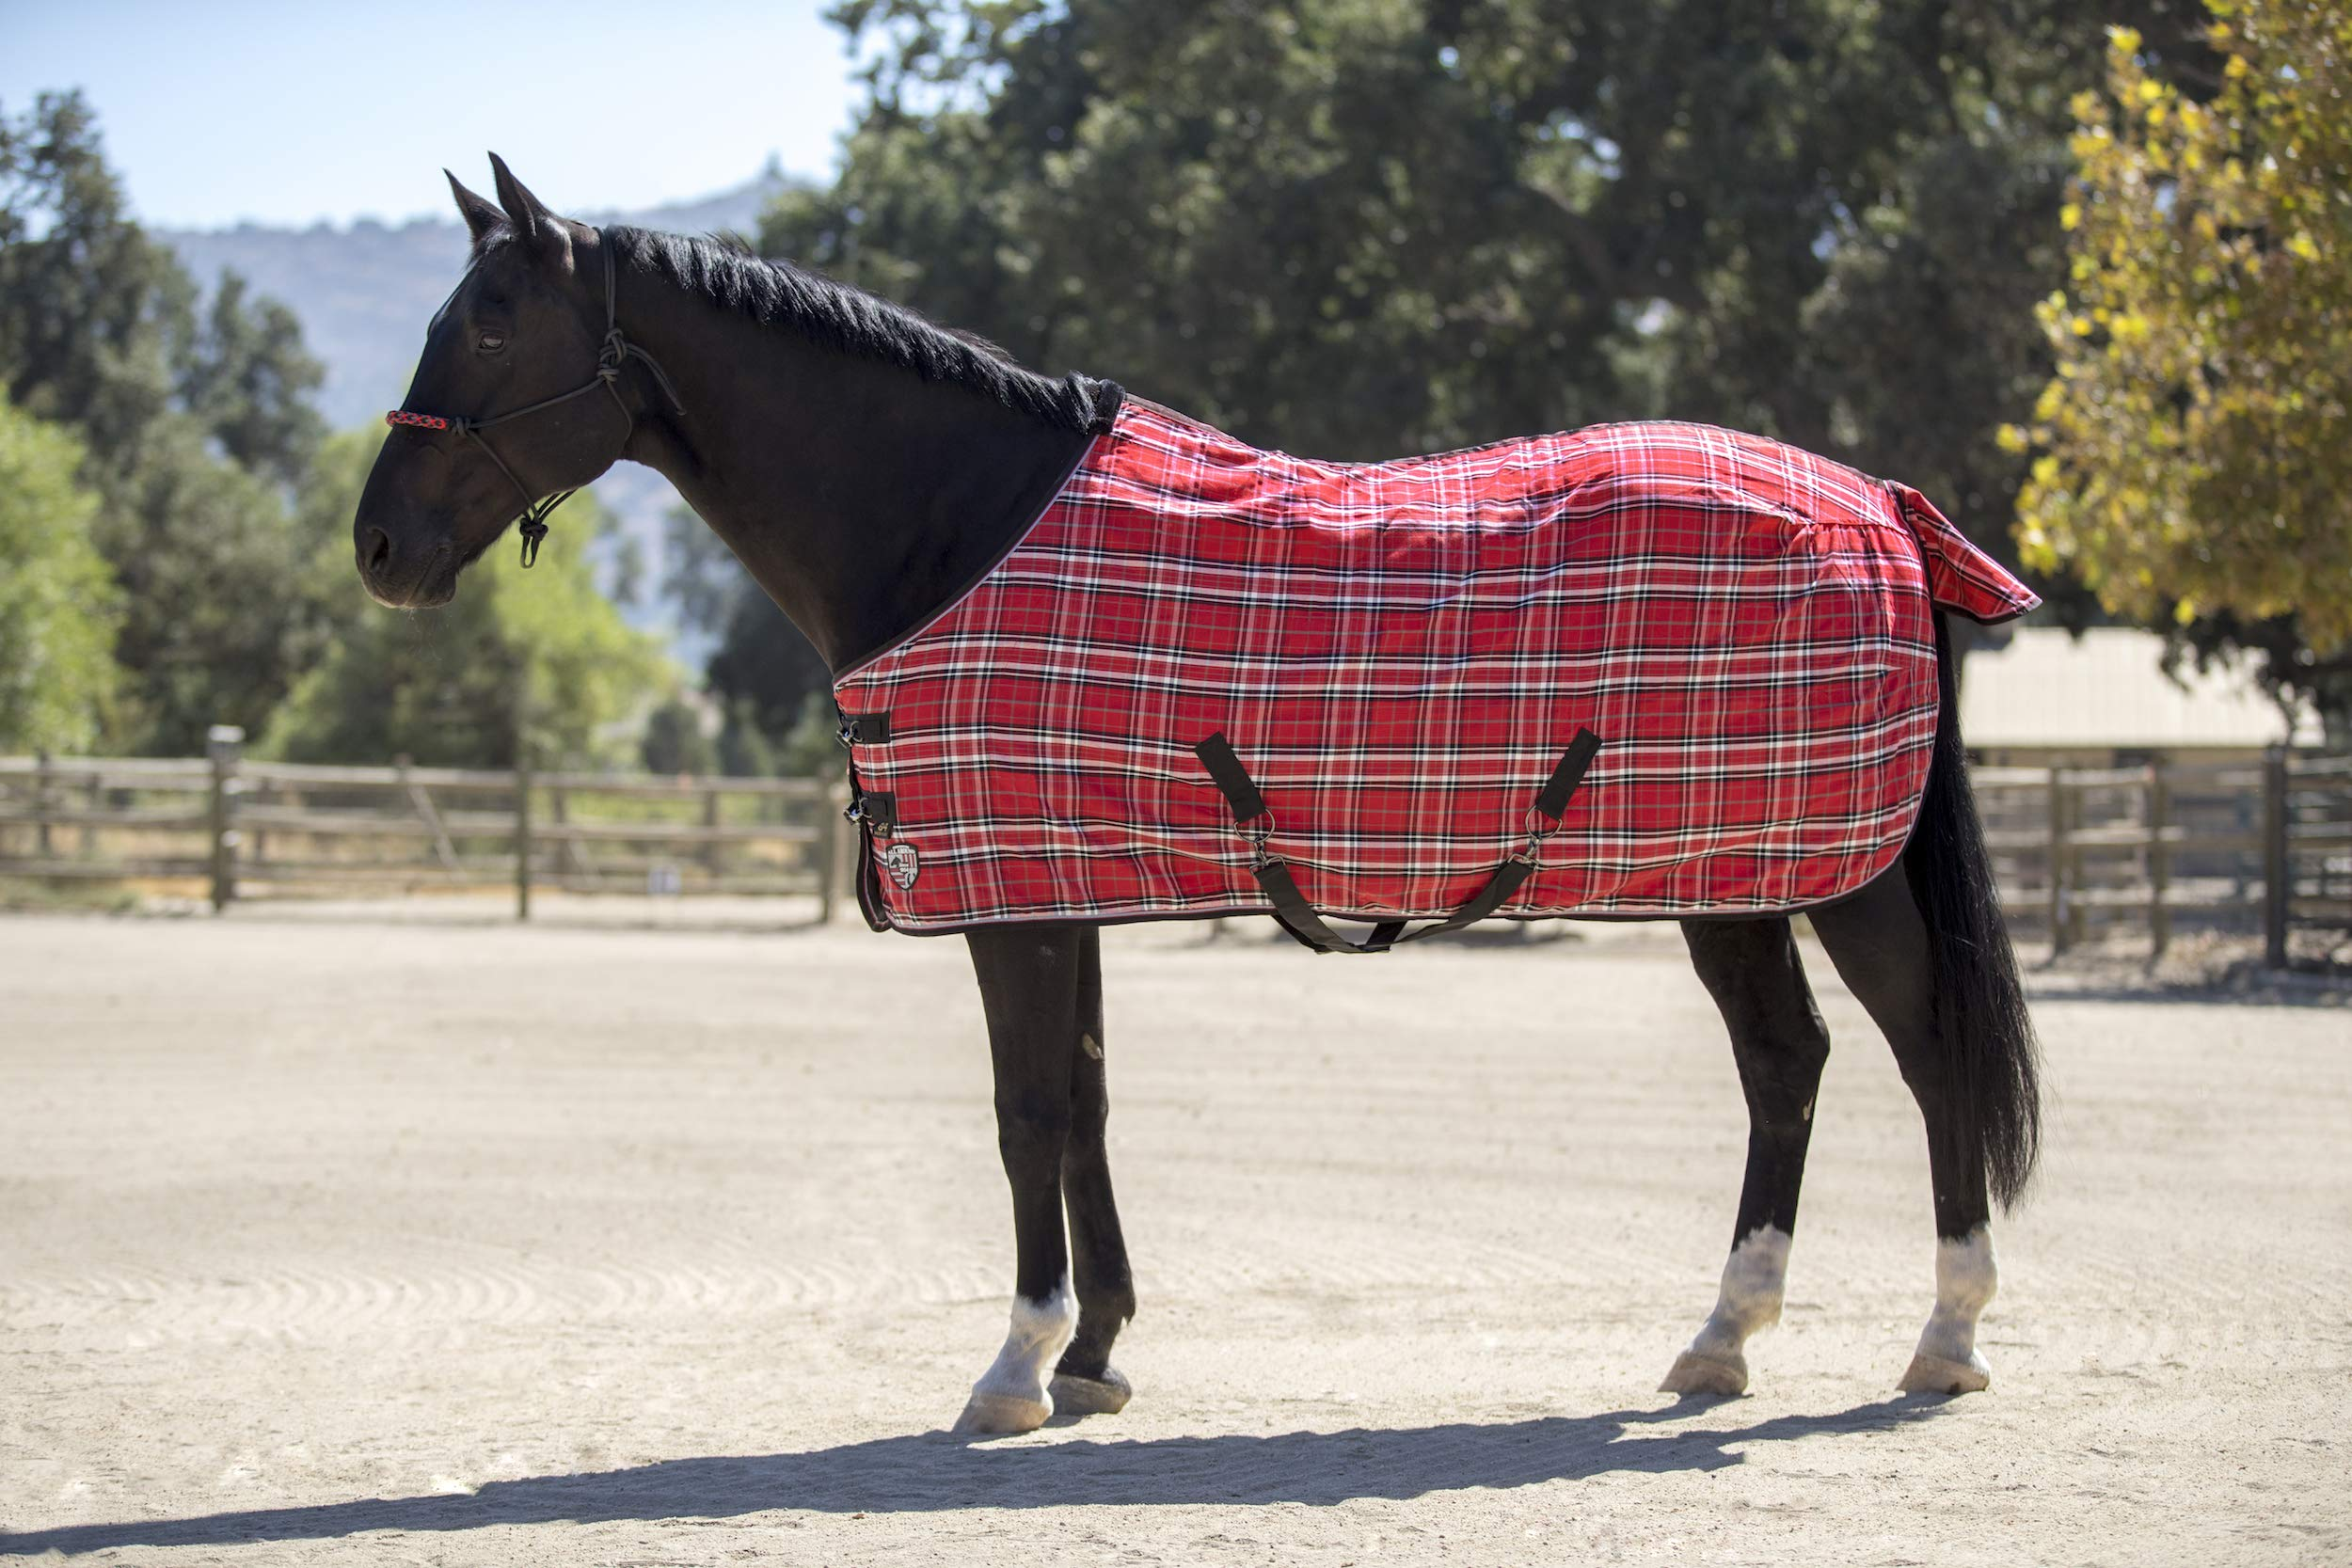 Kensington Products Poly Cotton Horse Blanket - Lightweight Breathable Equine Stable Day Sheet (75, 161- Deluxe Red) by Kensington Protective Products